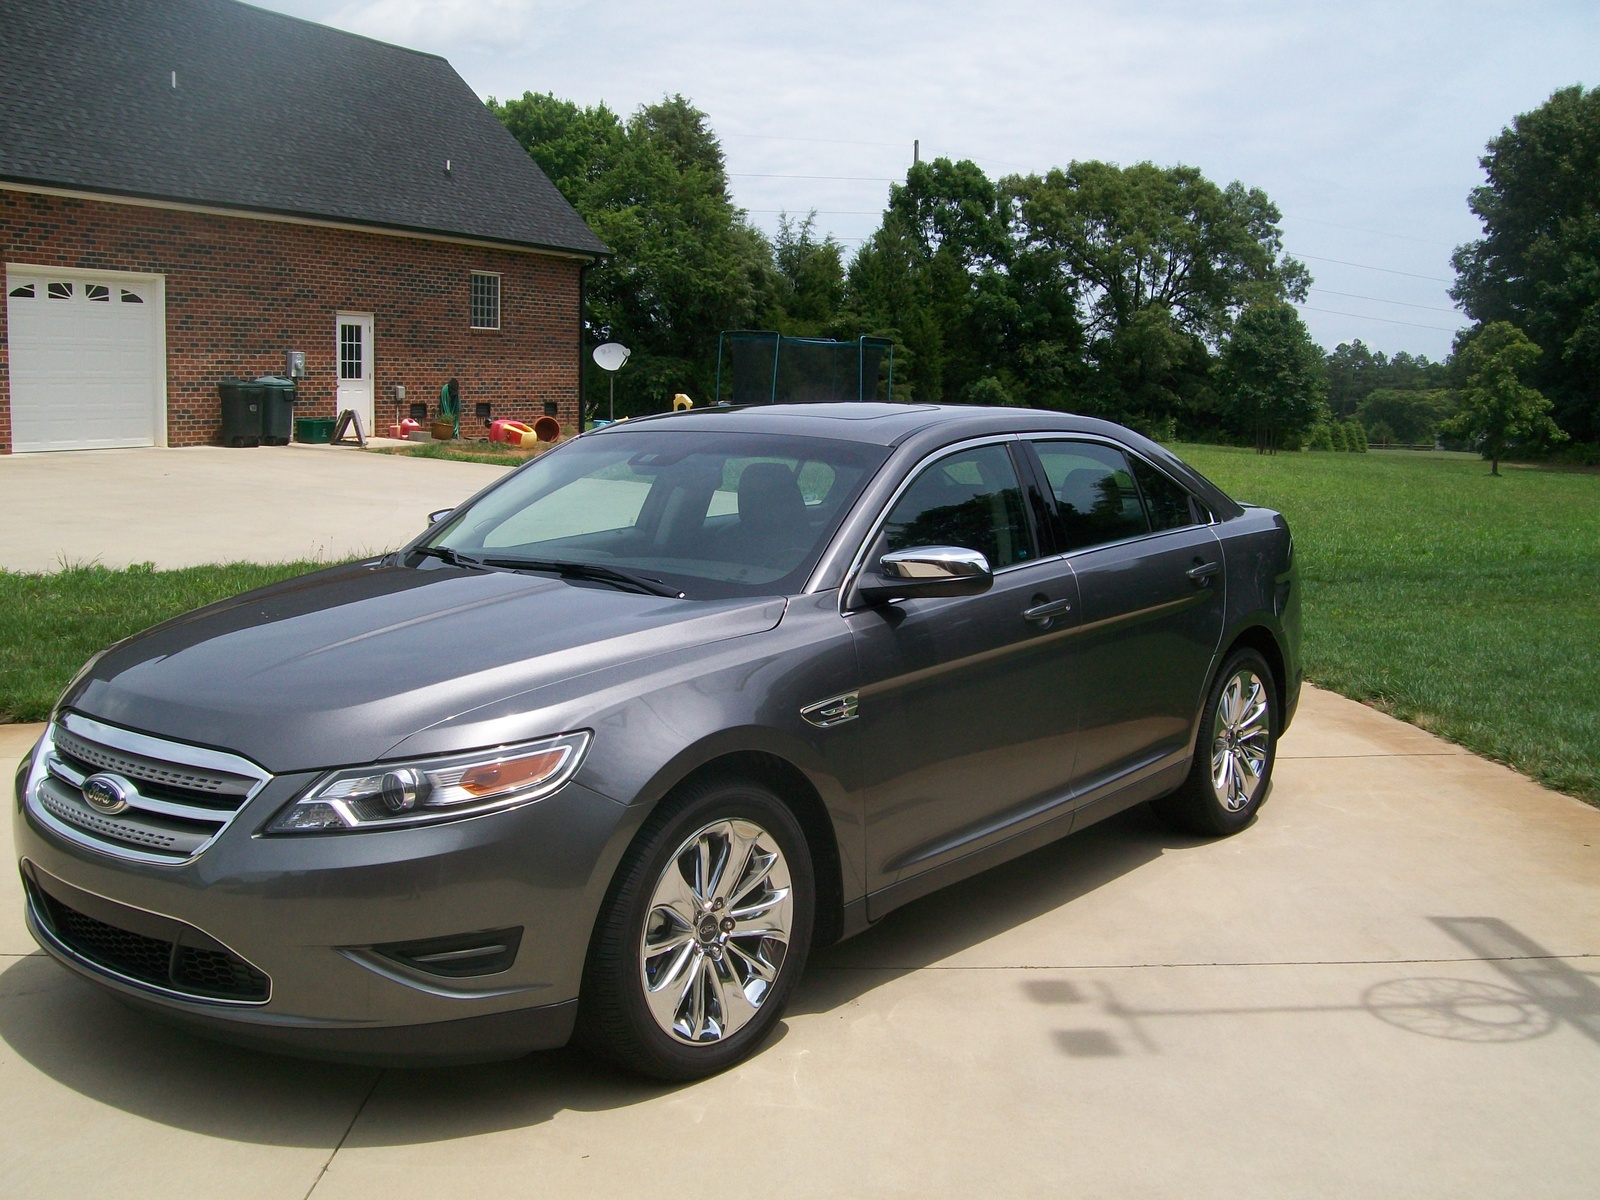 review 2011 ford taurus sho new and used car reviews html autos weblog. Black Bedroom Furniture Sets. Home Design Ideas